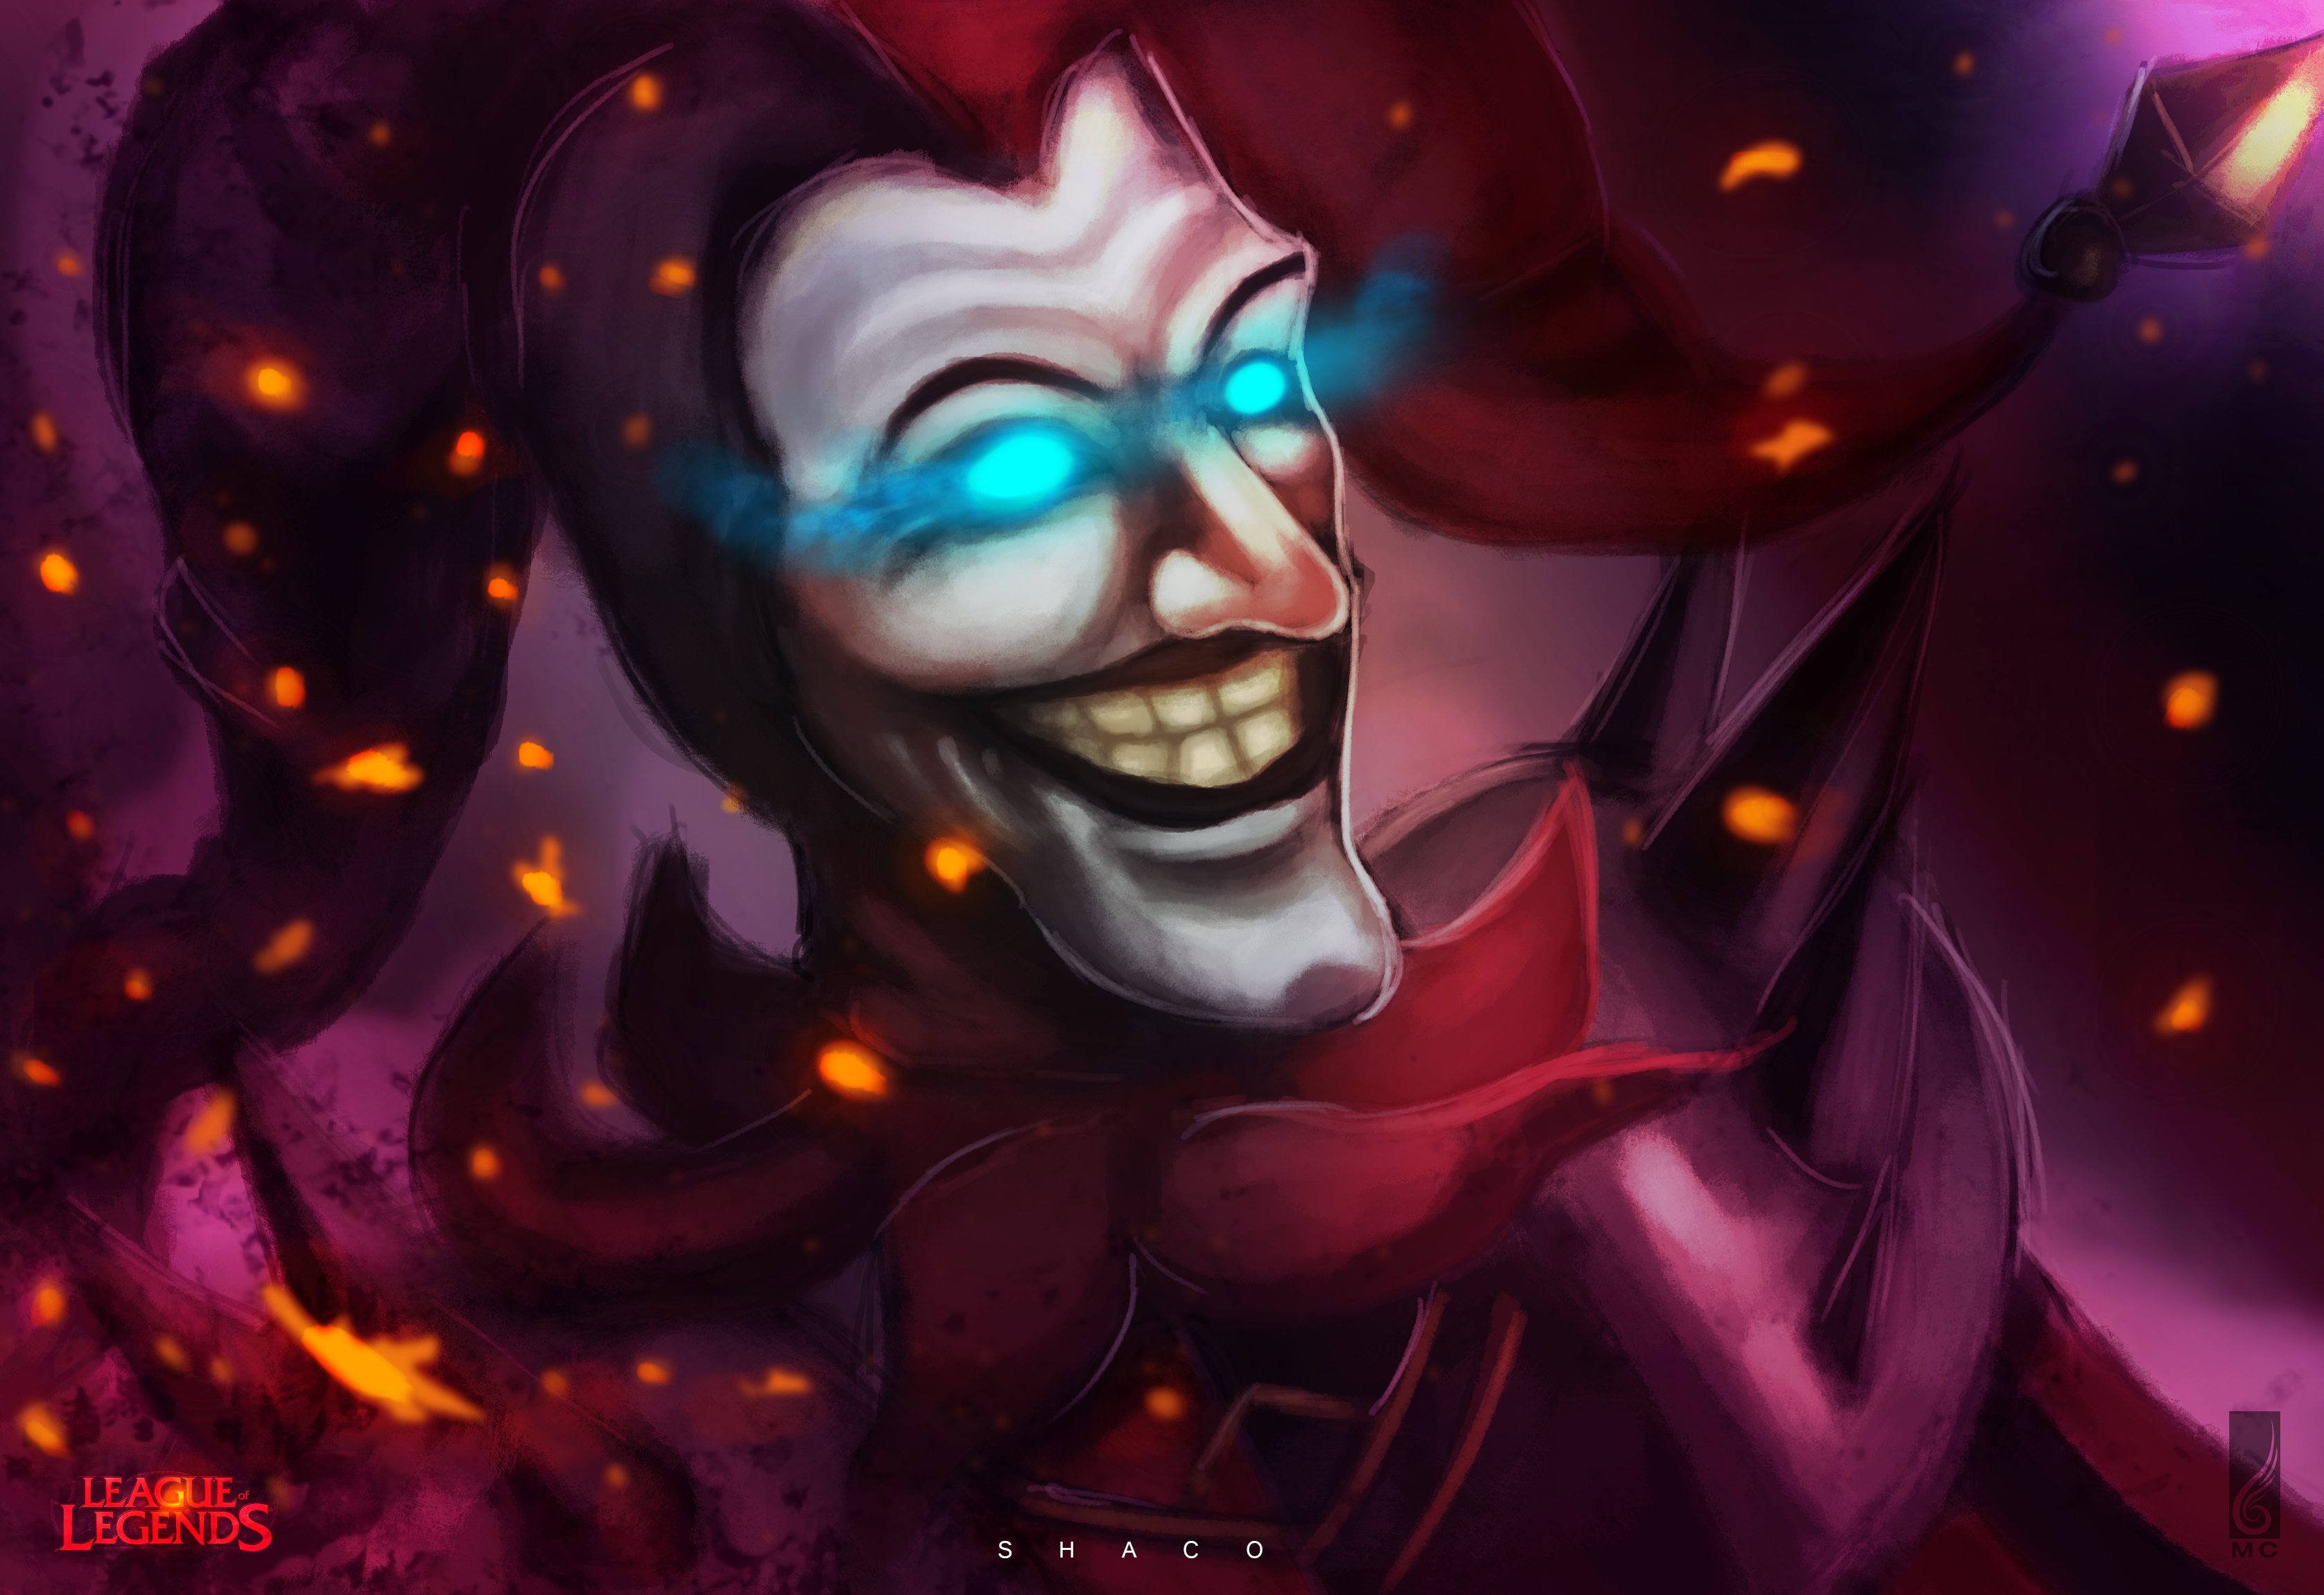 Shaco League of Legends Fan art by MCilustracion on DeviantArt